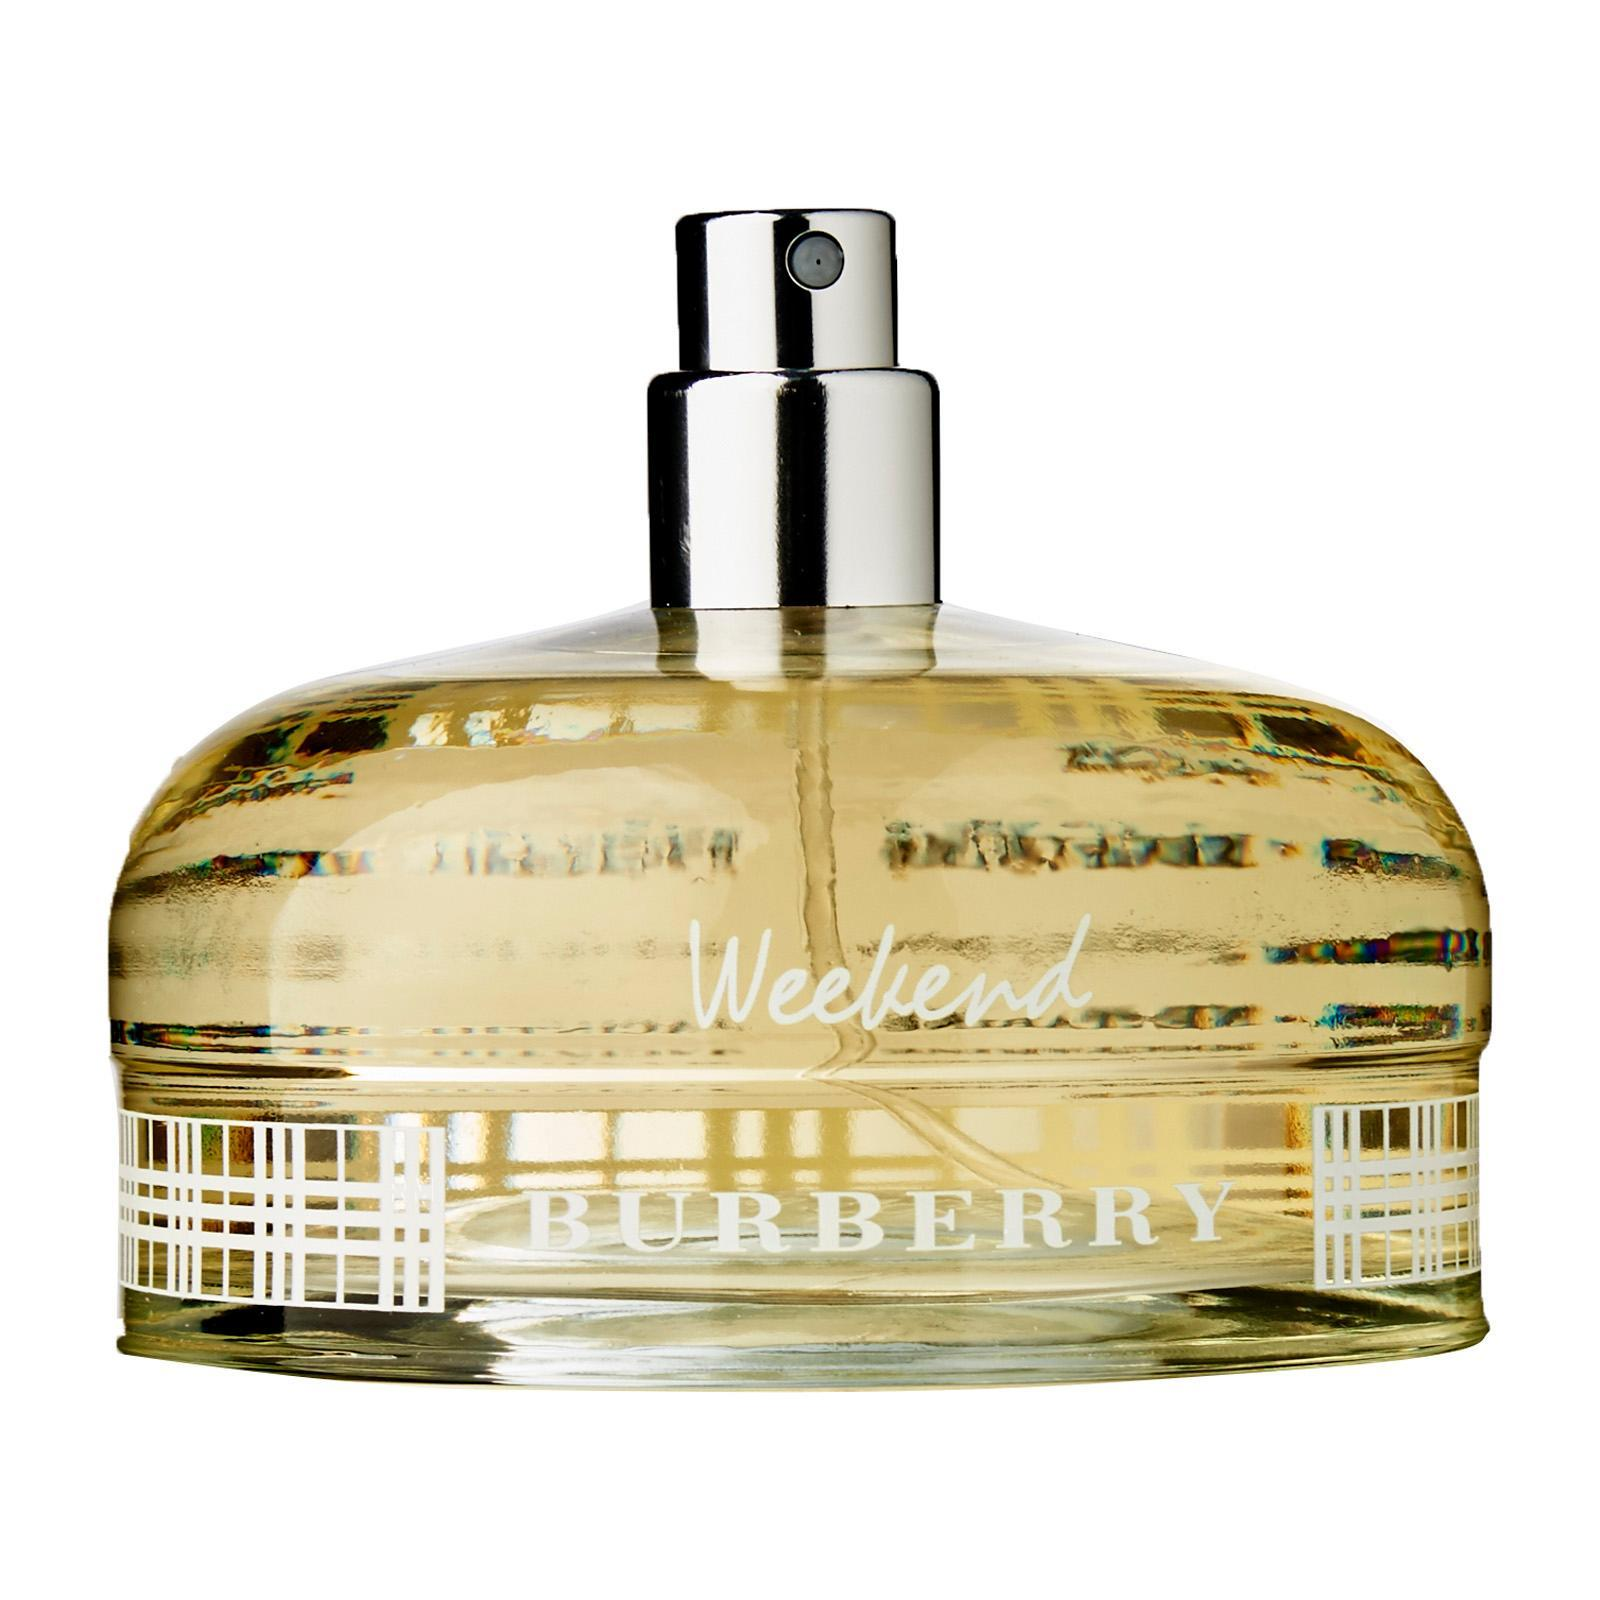 Burberry Weekend For Women Eau De Parfum Perfume Fragrance Spray Tester